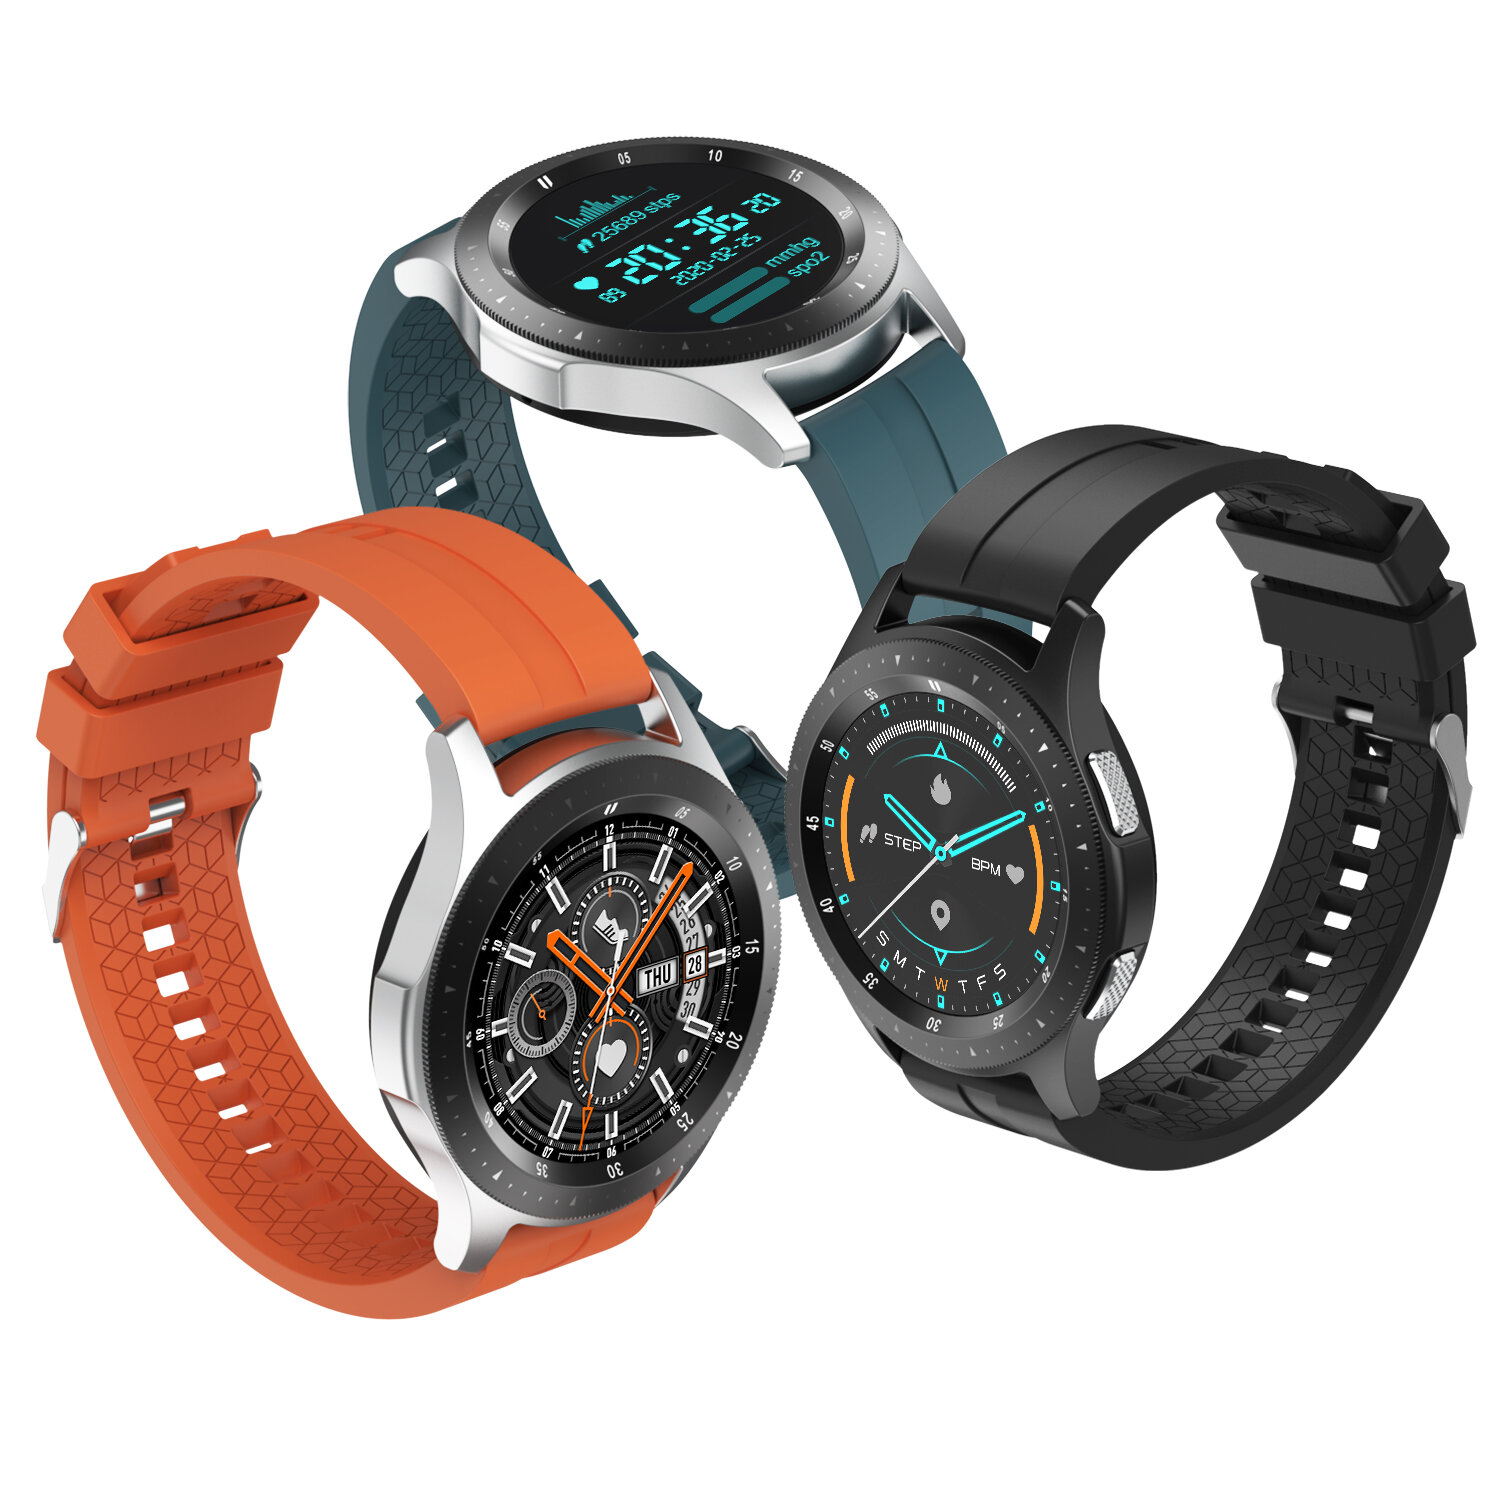 [bluetooth Call]Bakeey W68 Full Touch 320*320px Screen Heart Rate Blood Pressure Oxygen Monitor Double UI Menu Multiple Dials BT4.2+5.0 Dual-Mode Smart Watch